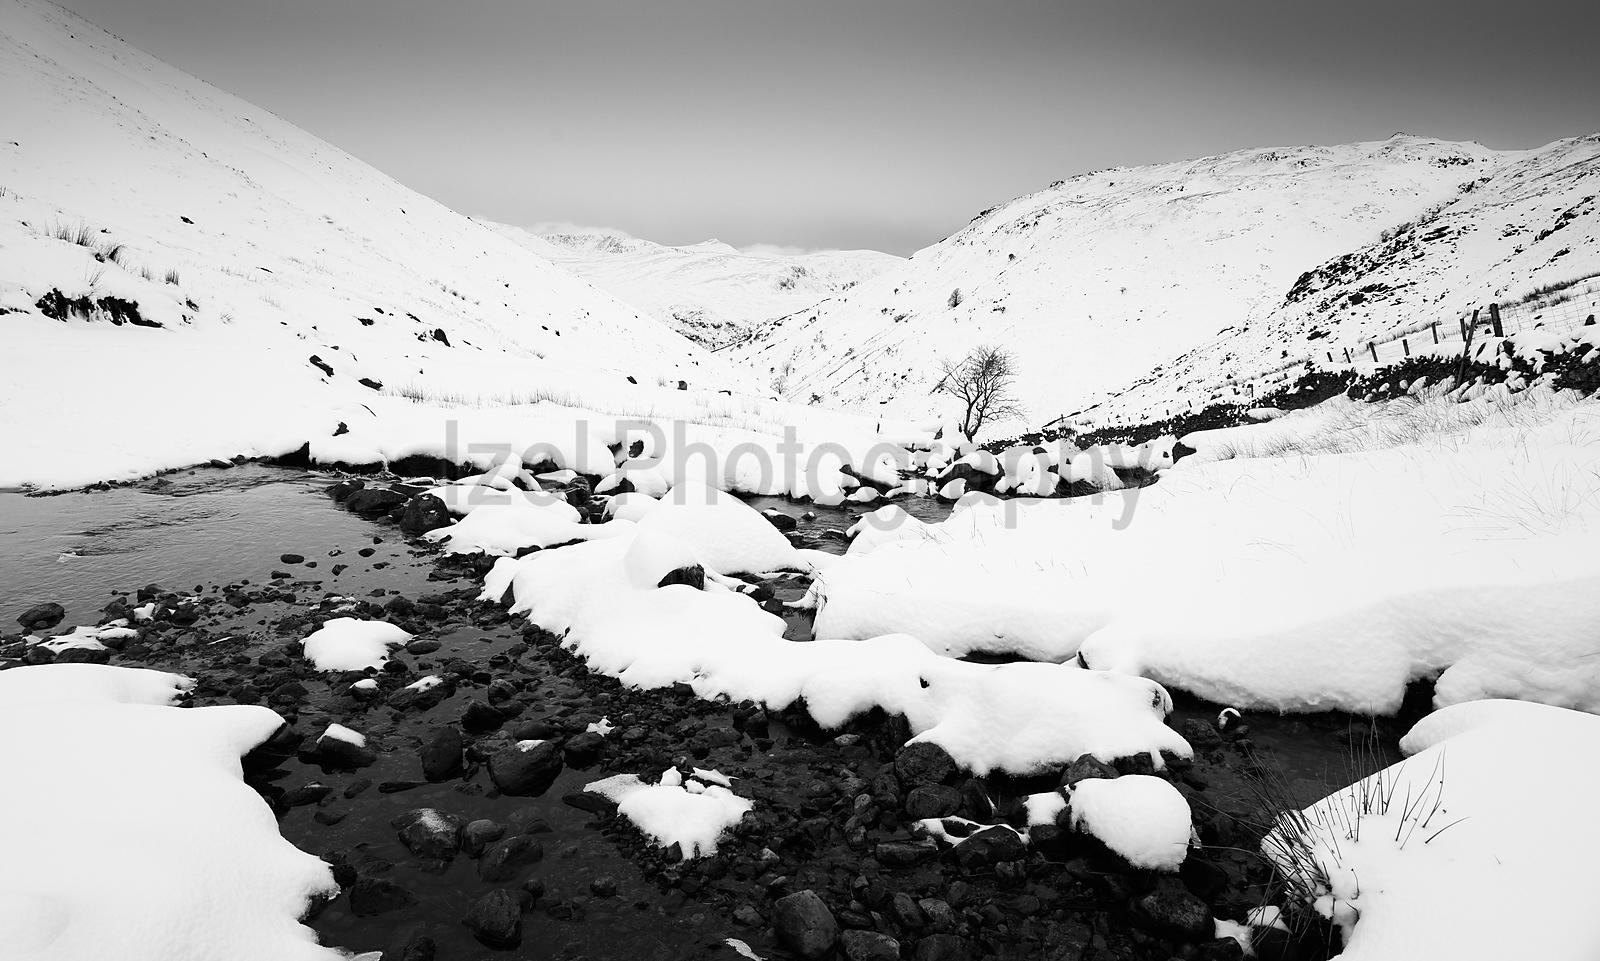 A black and white image of a winter snowy Lake District scene of Hayeswater Gill near Hartsop in the Lake District.